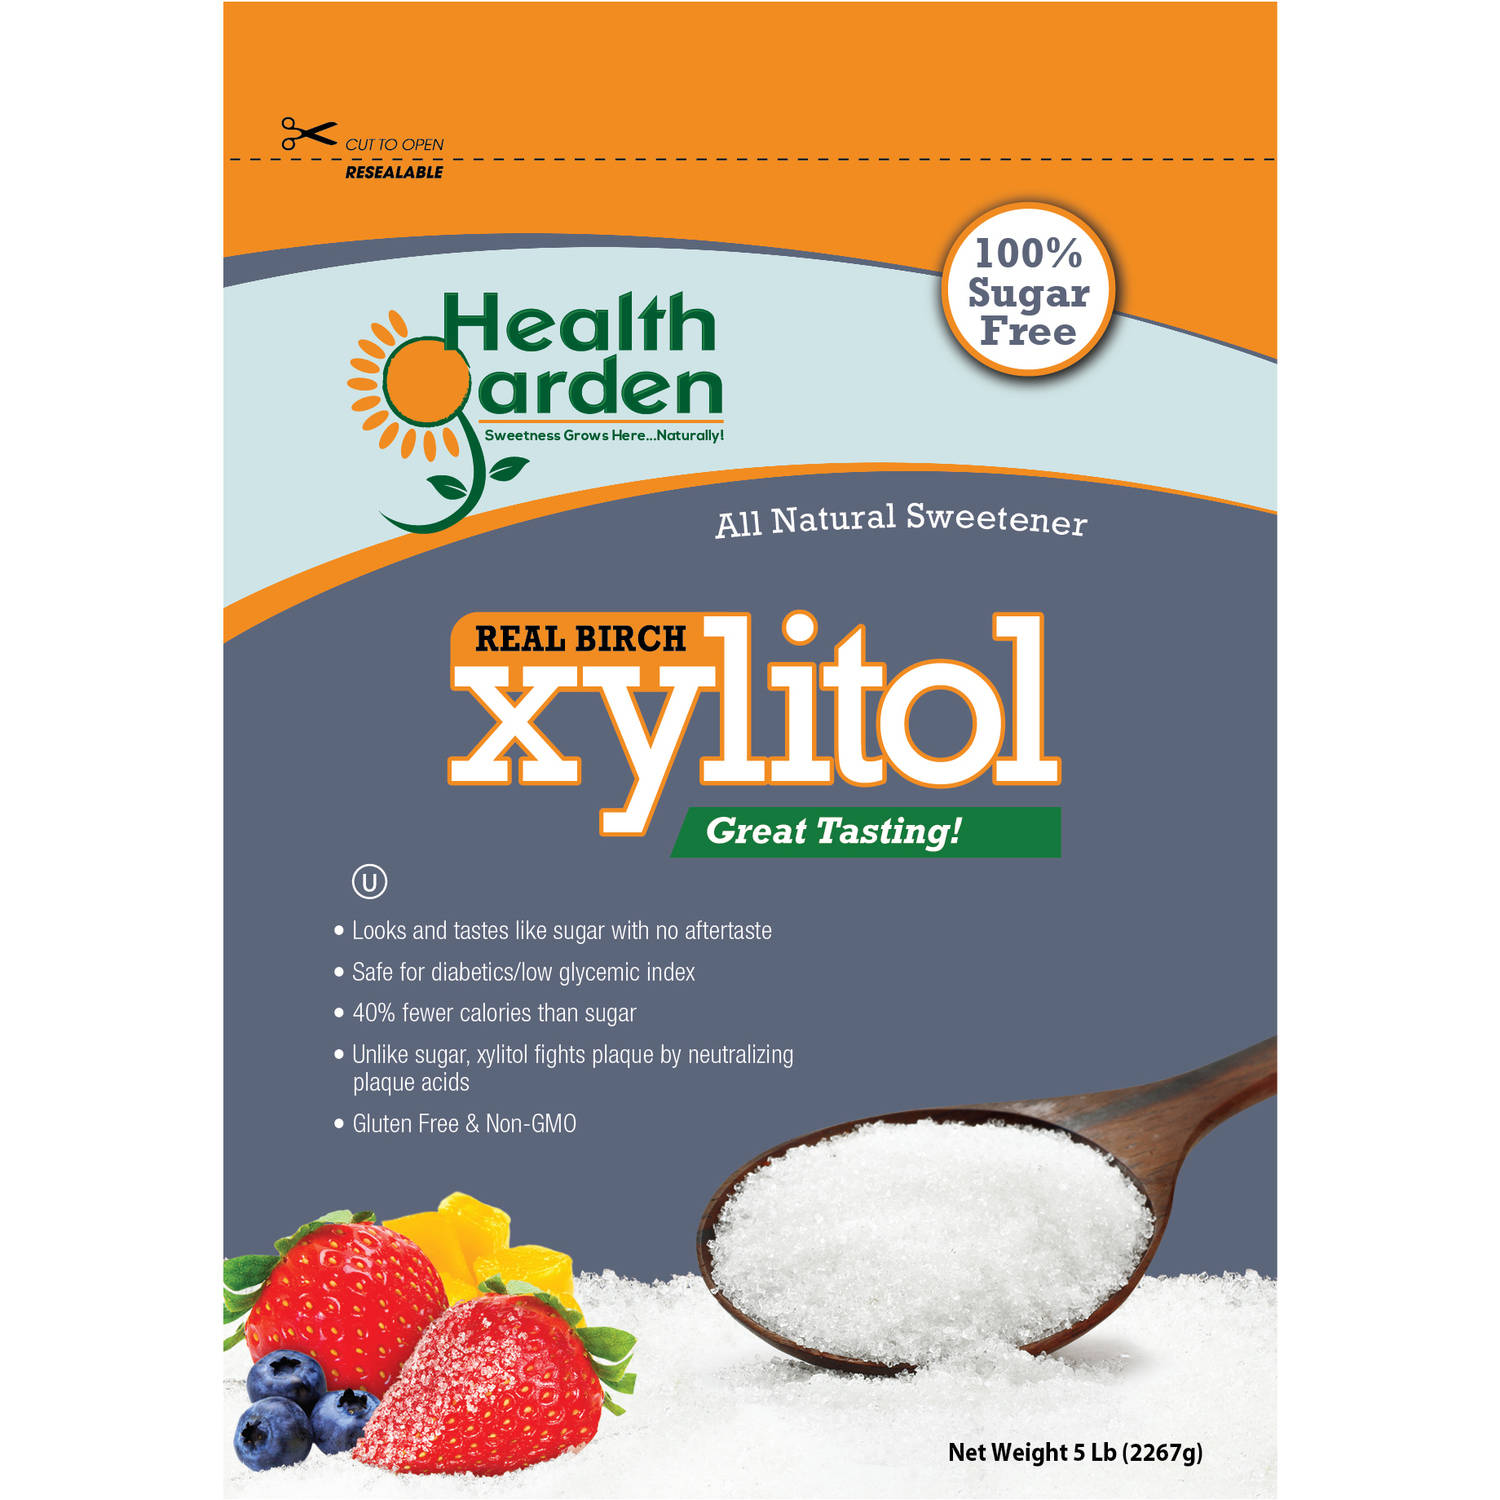 Health Garden Real Birch Xylitol All Natural Sweetener, 5 lbs